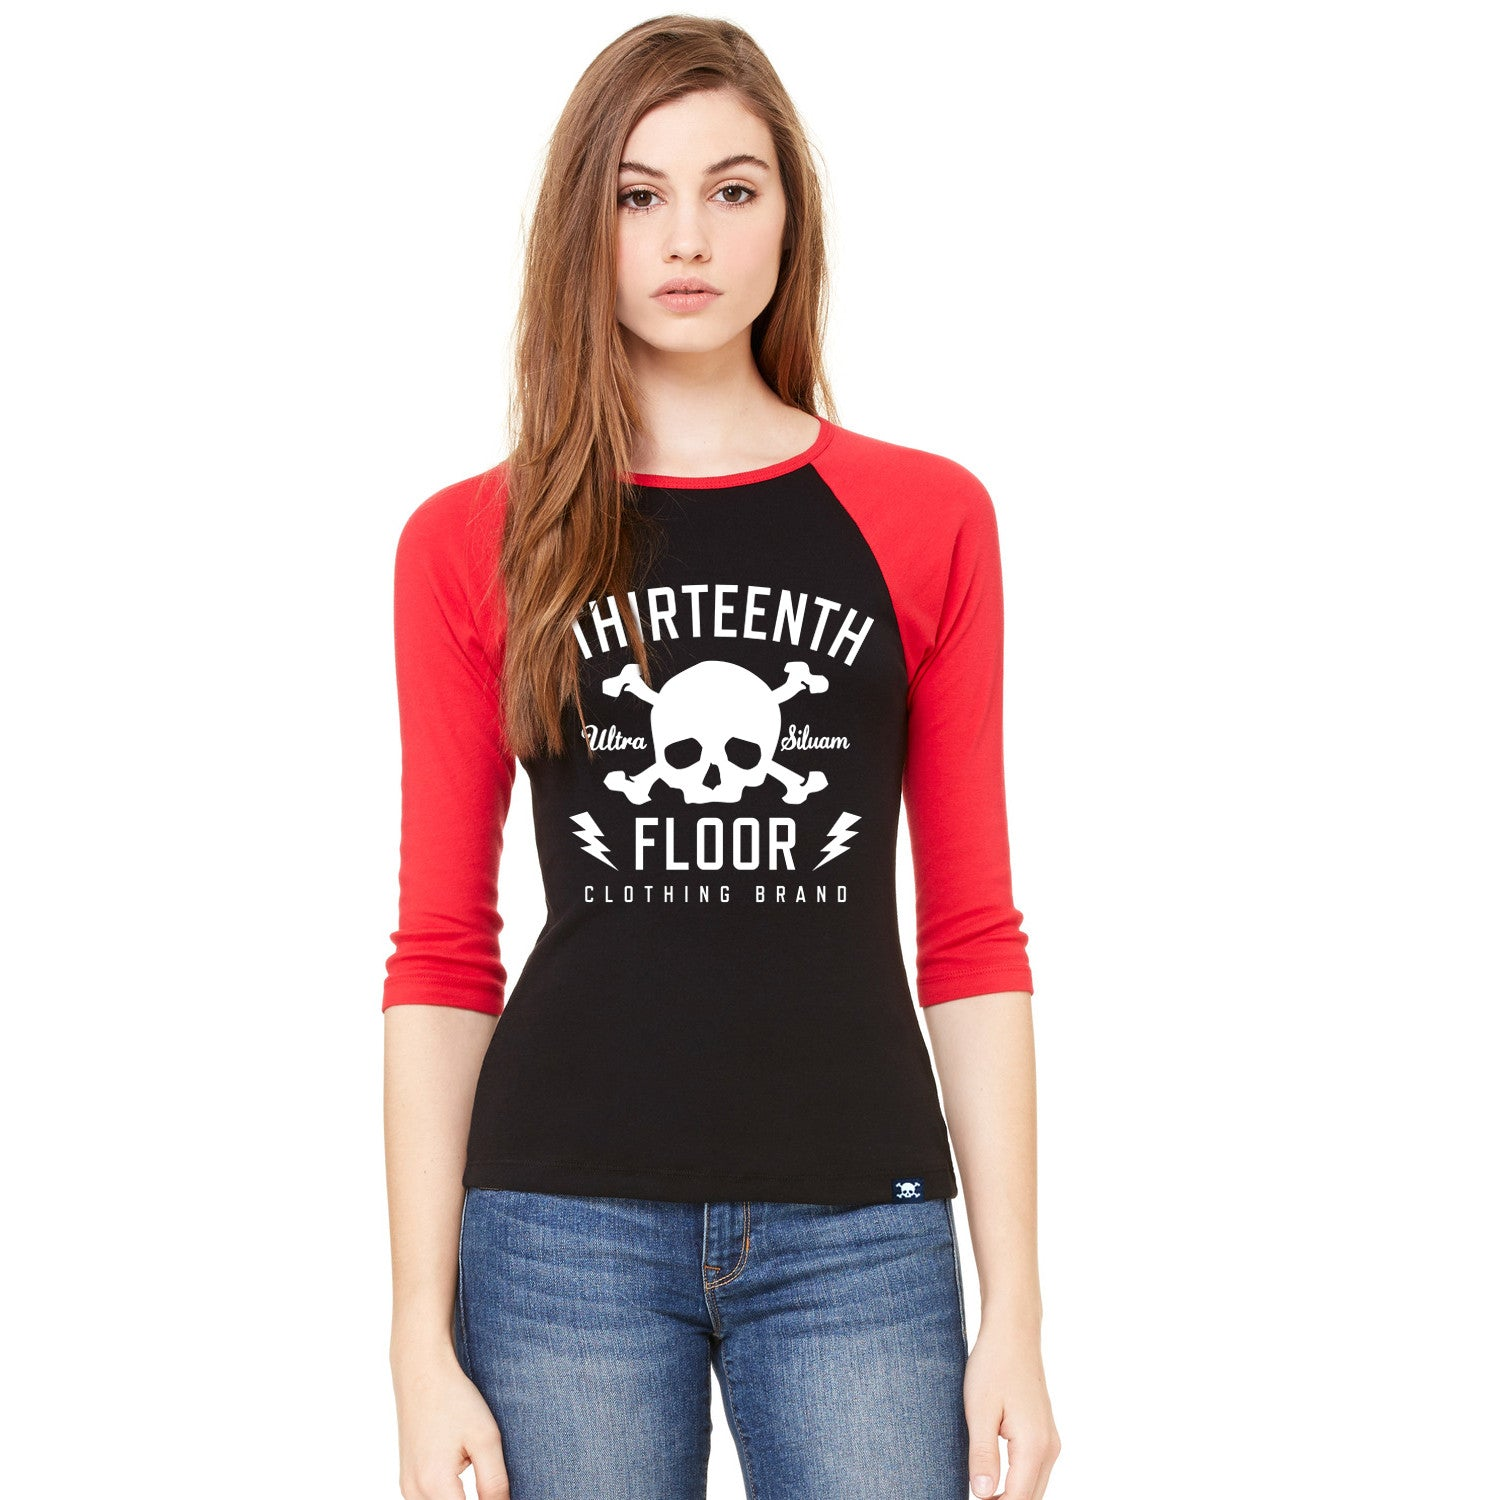 Skull & Bones Raglan - Black/Red - Thirteenth Floor